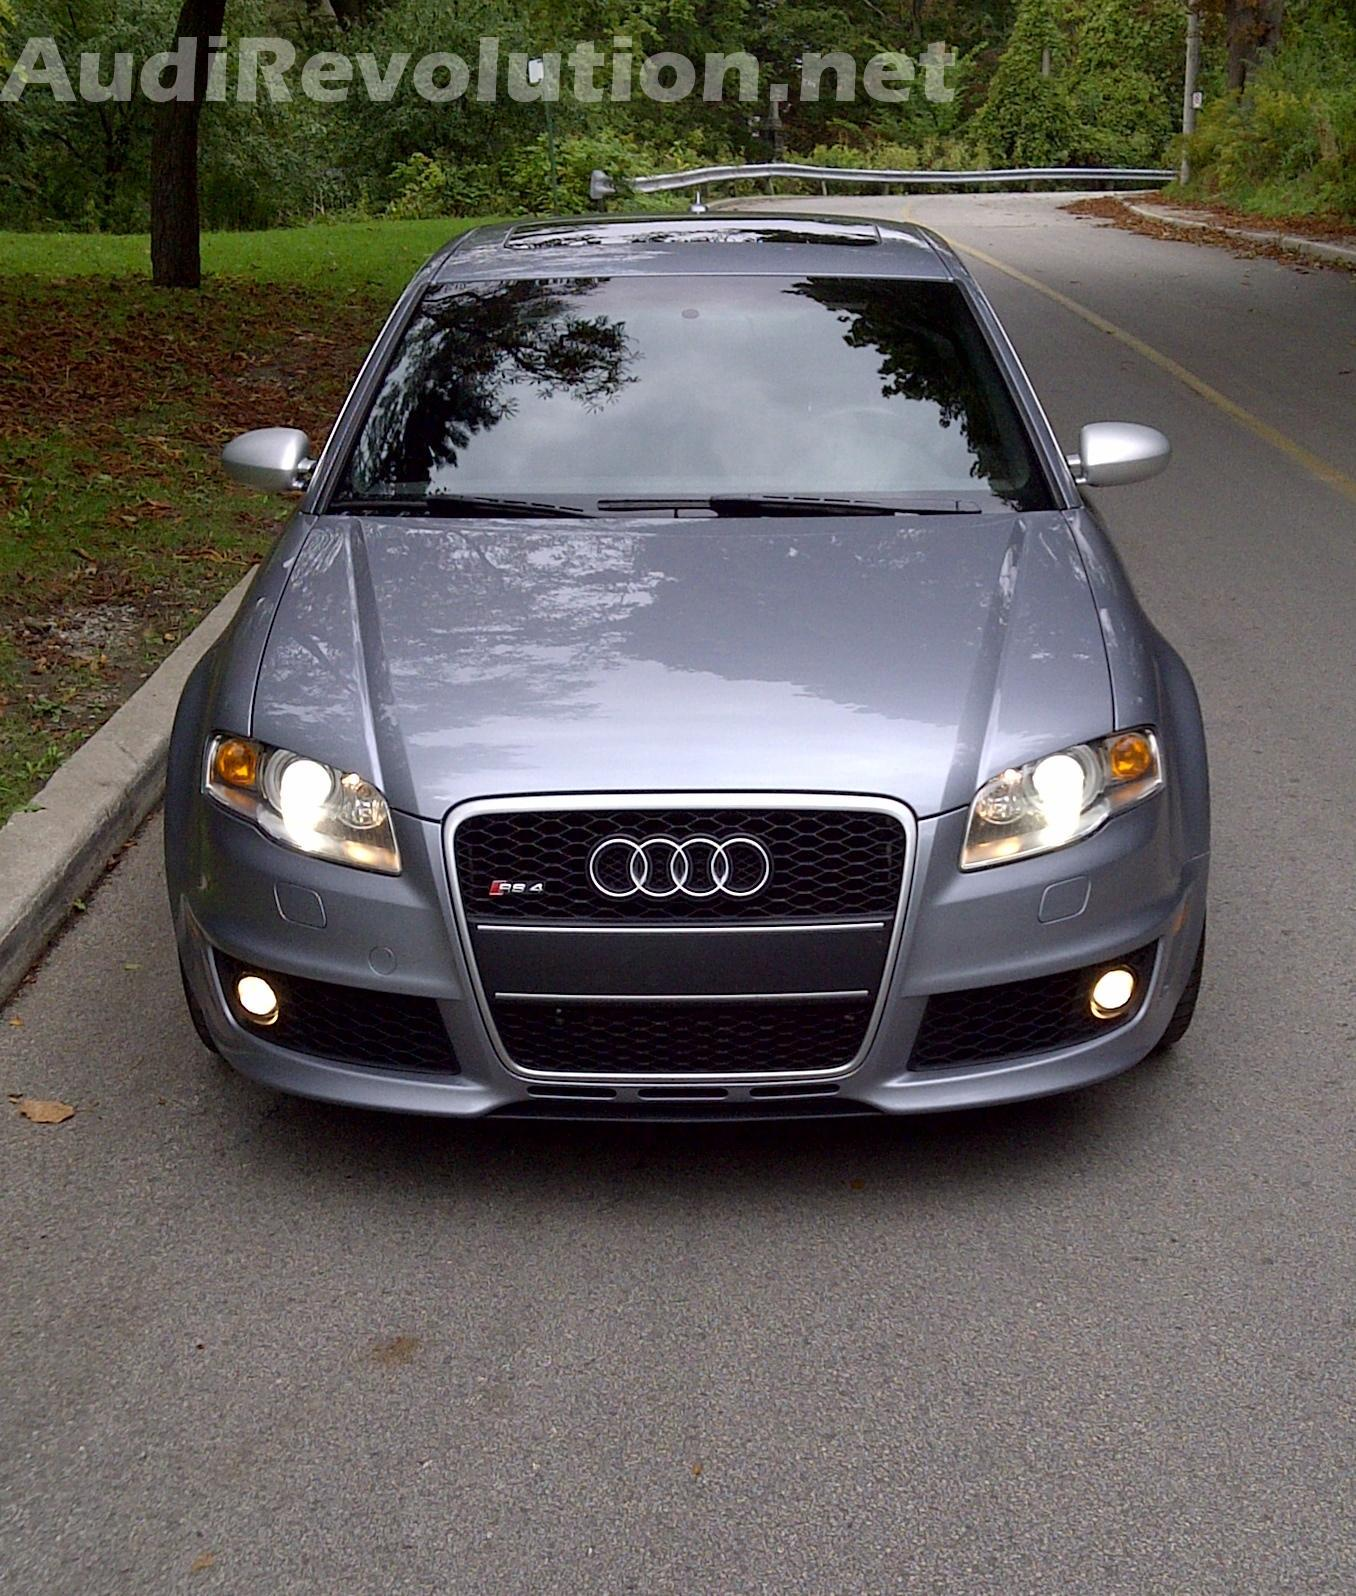 2008 Avus Silver Audi RS-4  picture, mods, upgrades